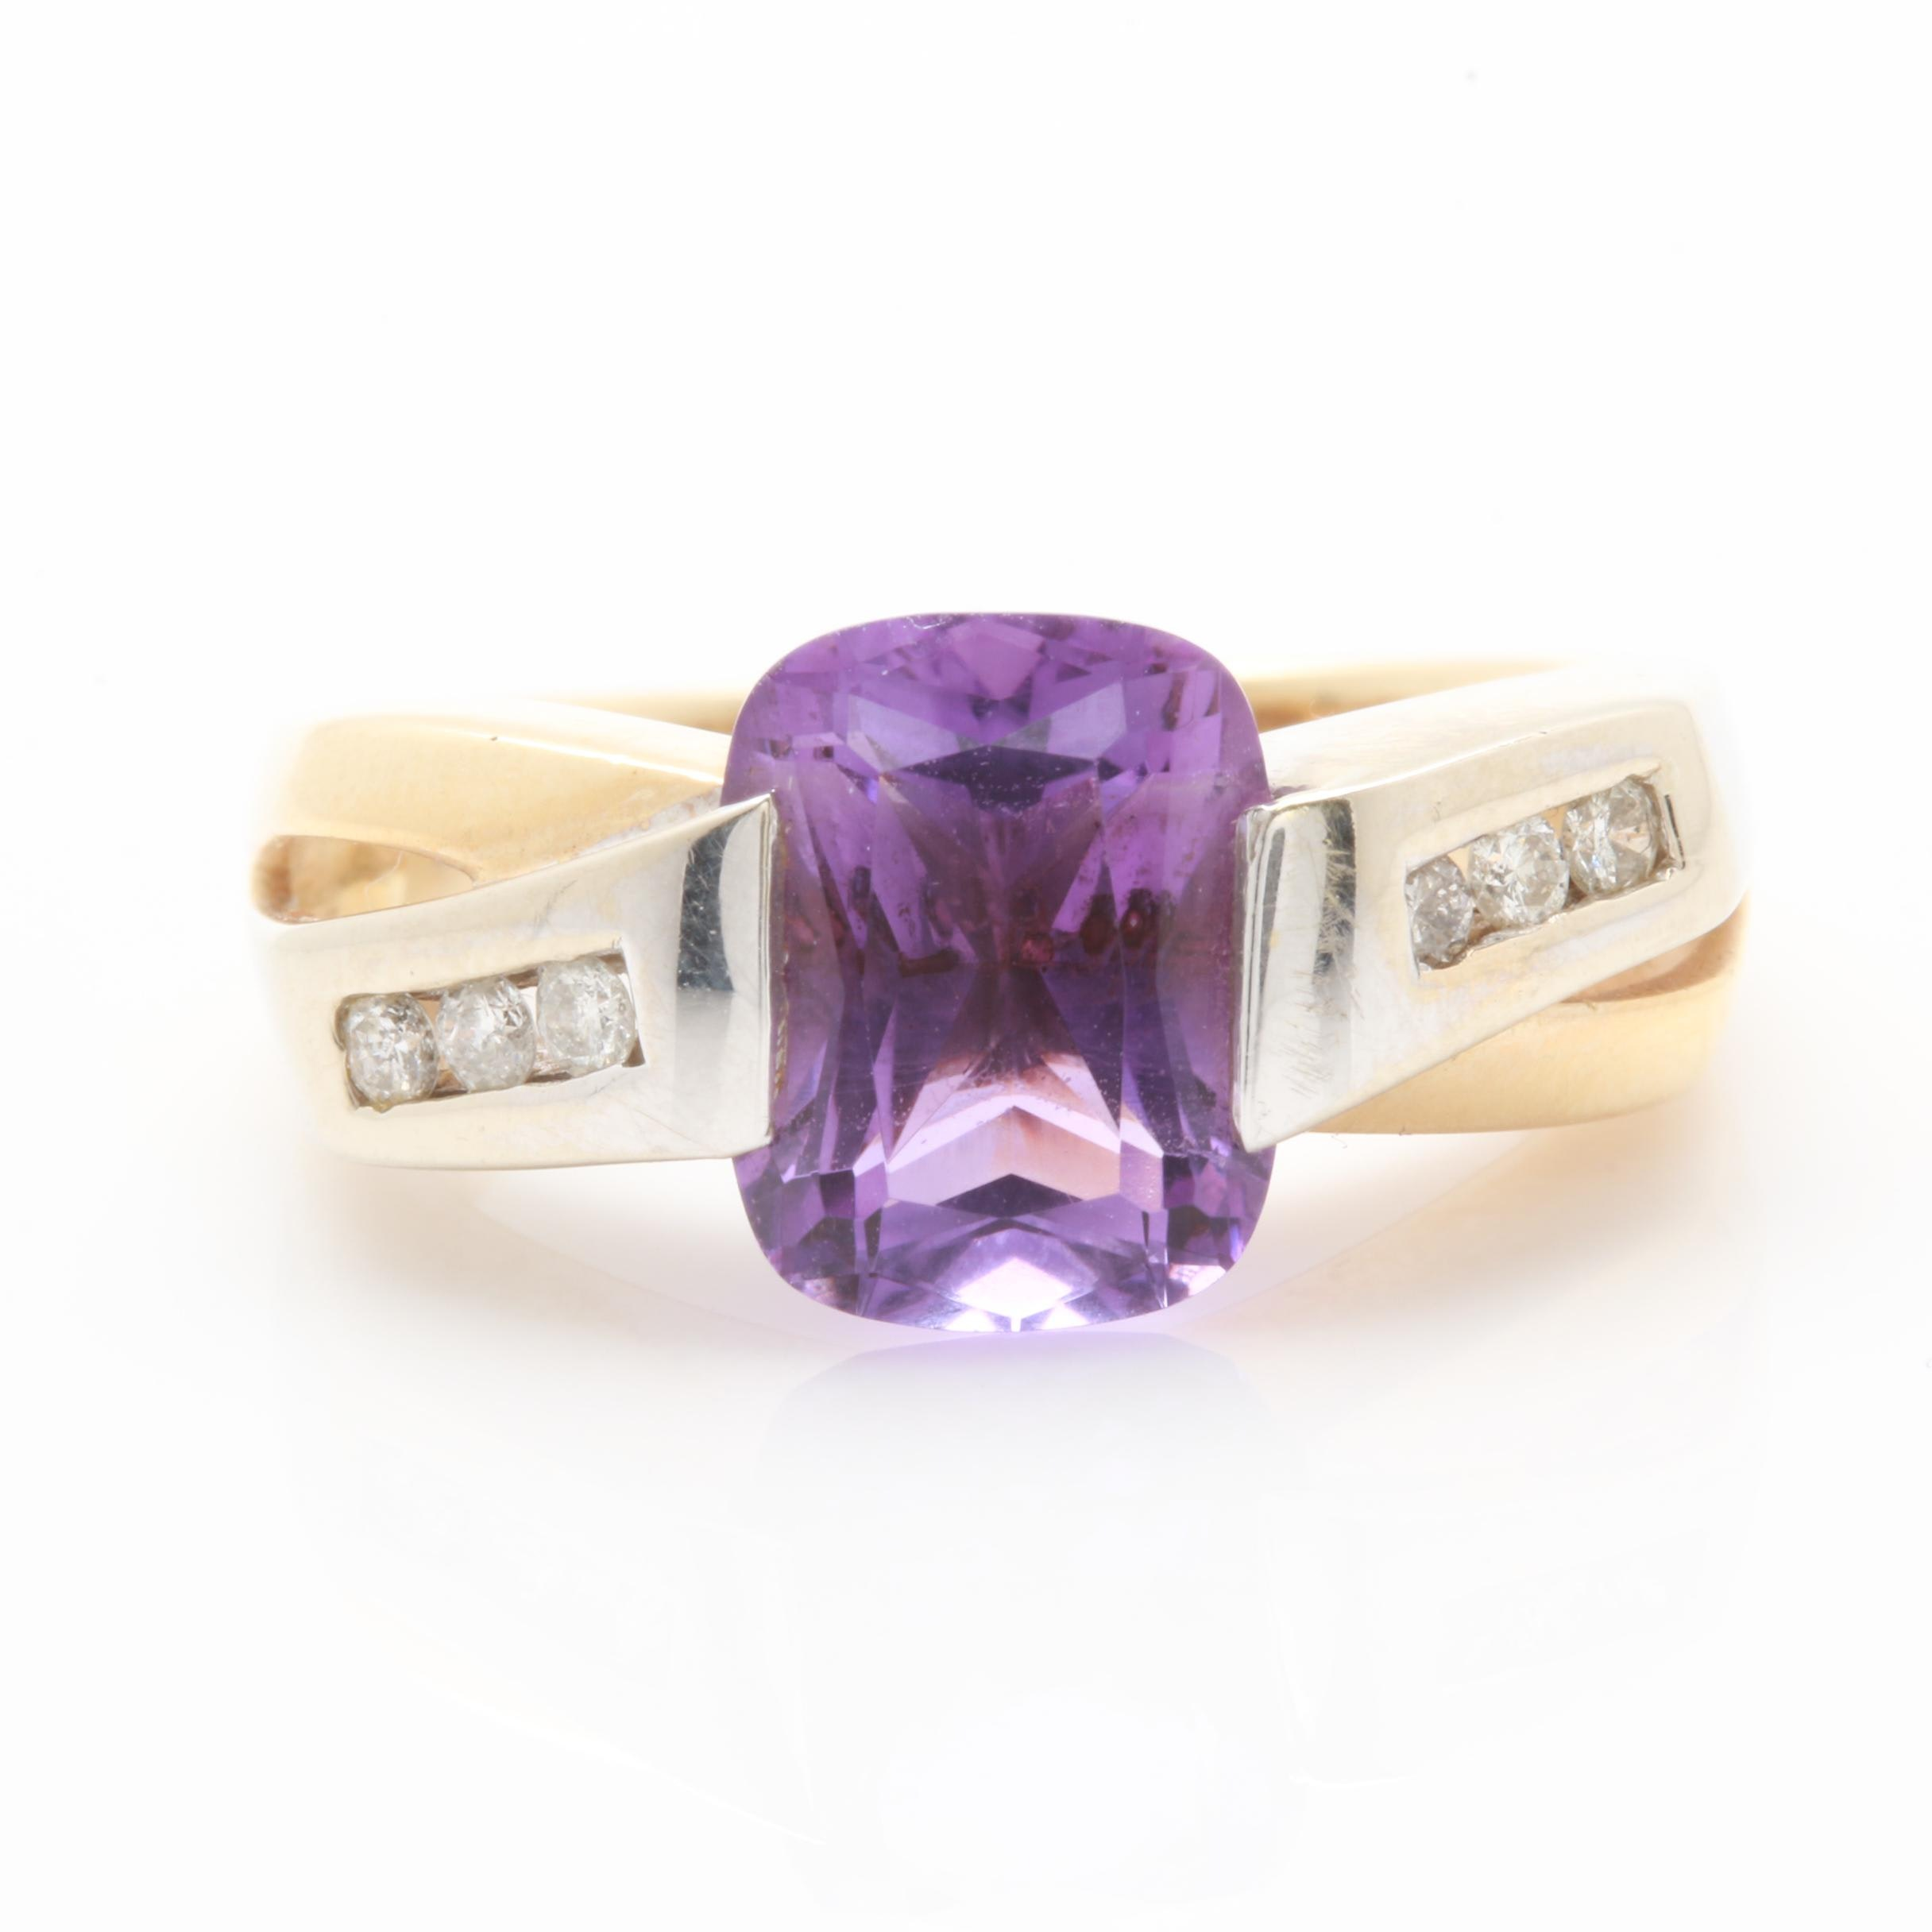 14K Yellow Gold Amethyst and Diamond Ring with 14K White Gold Accents